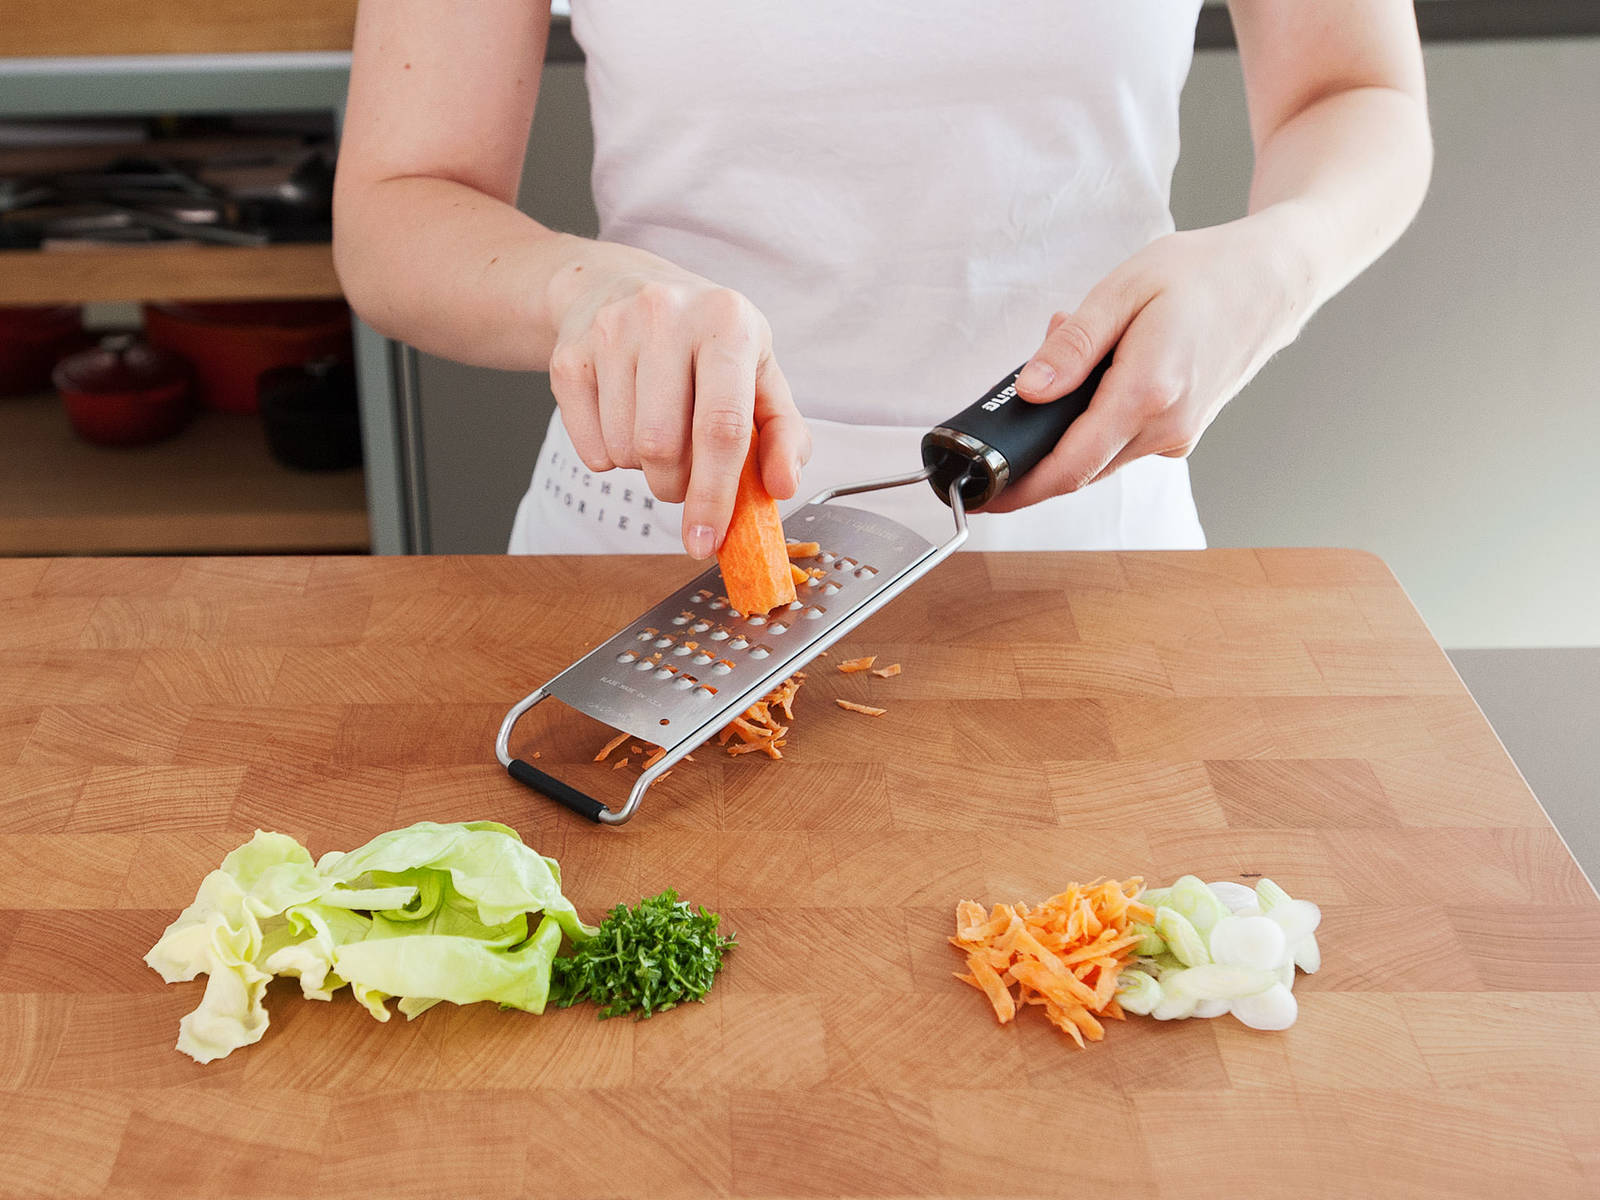 Tear lettuce into bite-sized pieces. Cut green onions crosswise into fine rings. Roughly chop parsley. Cut corn from cob. Peel and grate carrot. Transfer everything to a large bowl.